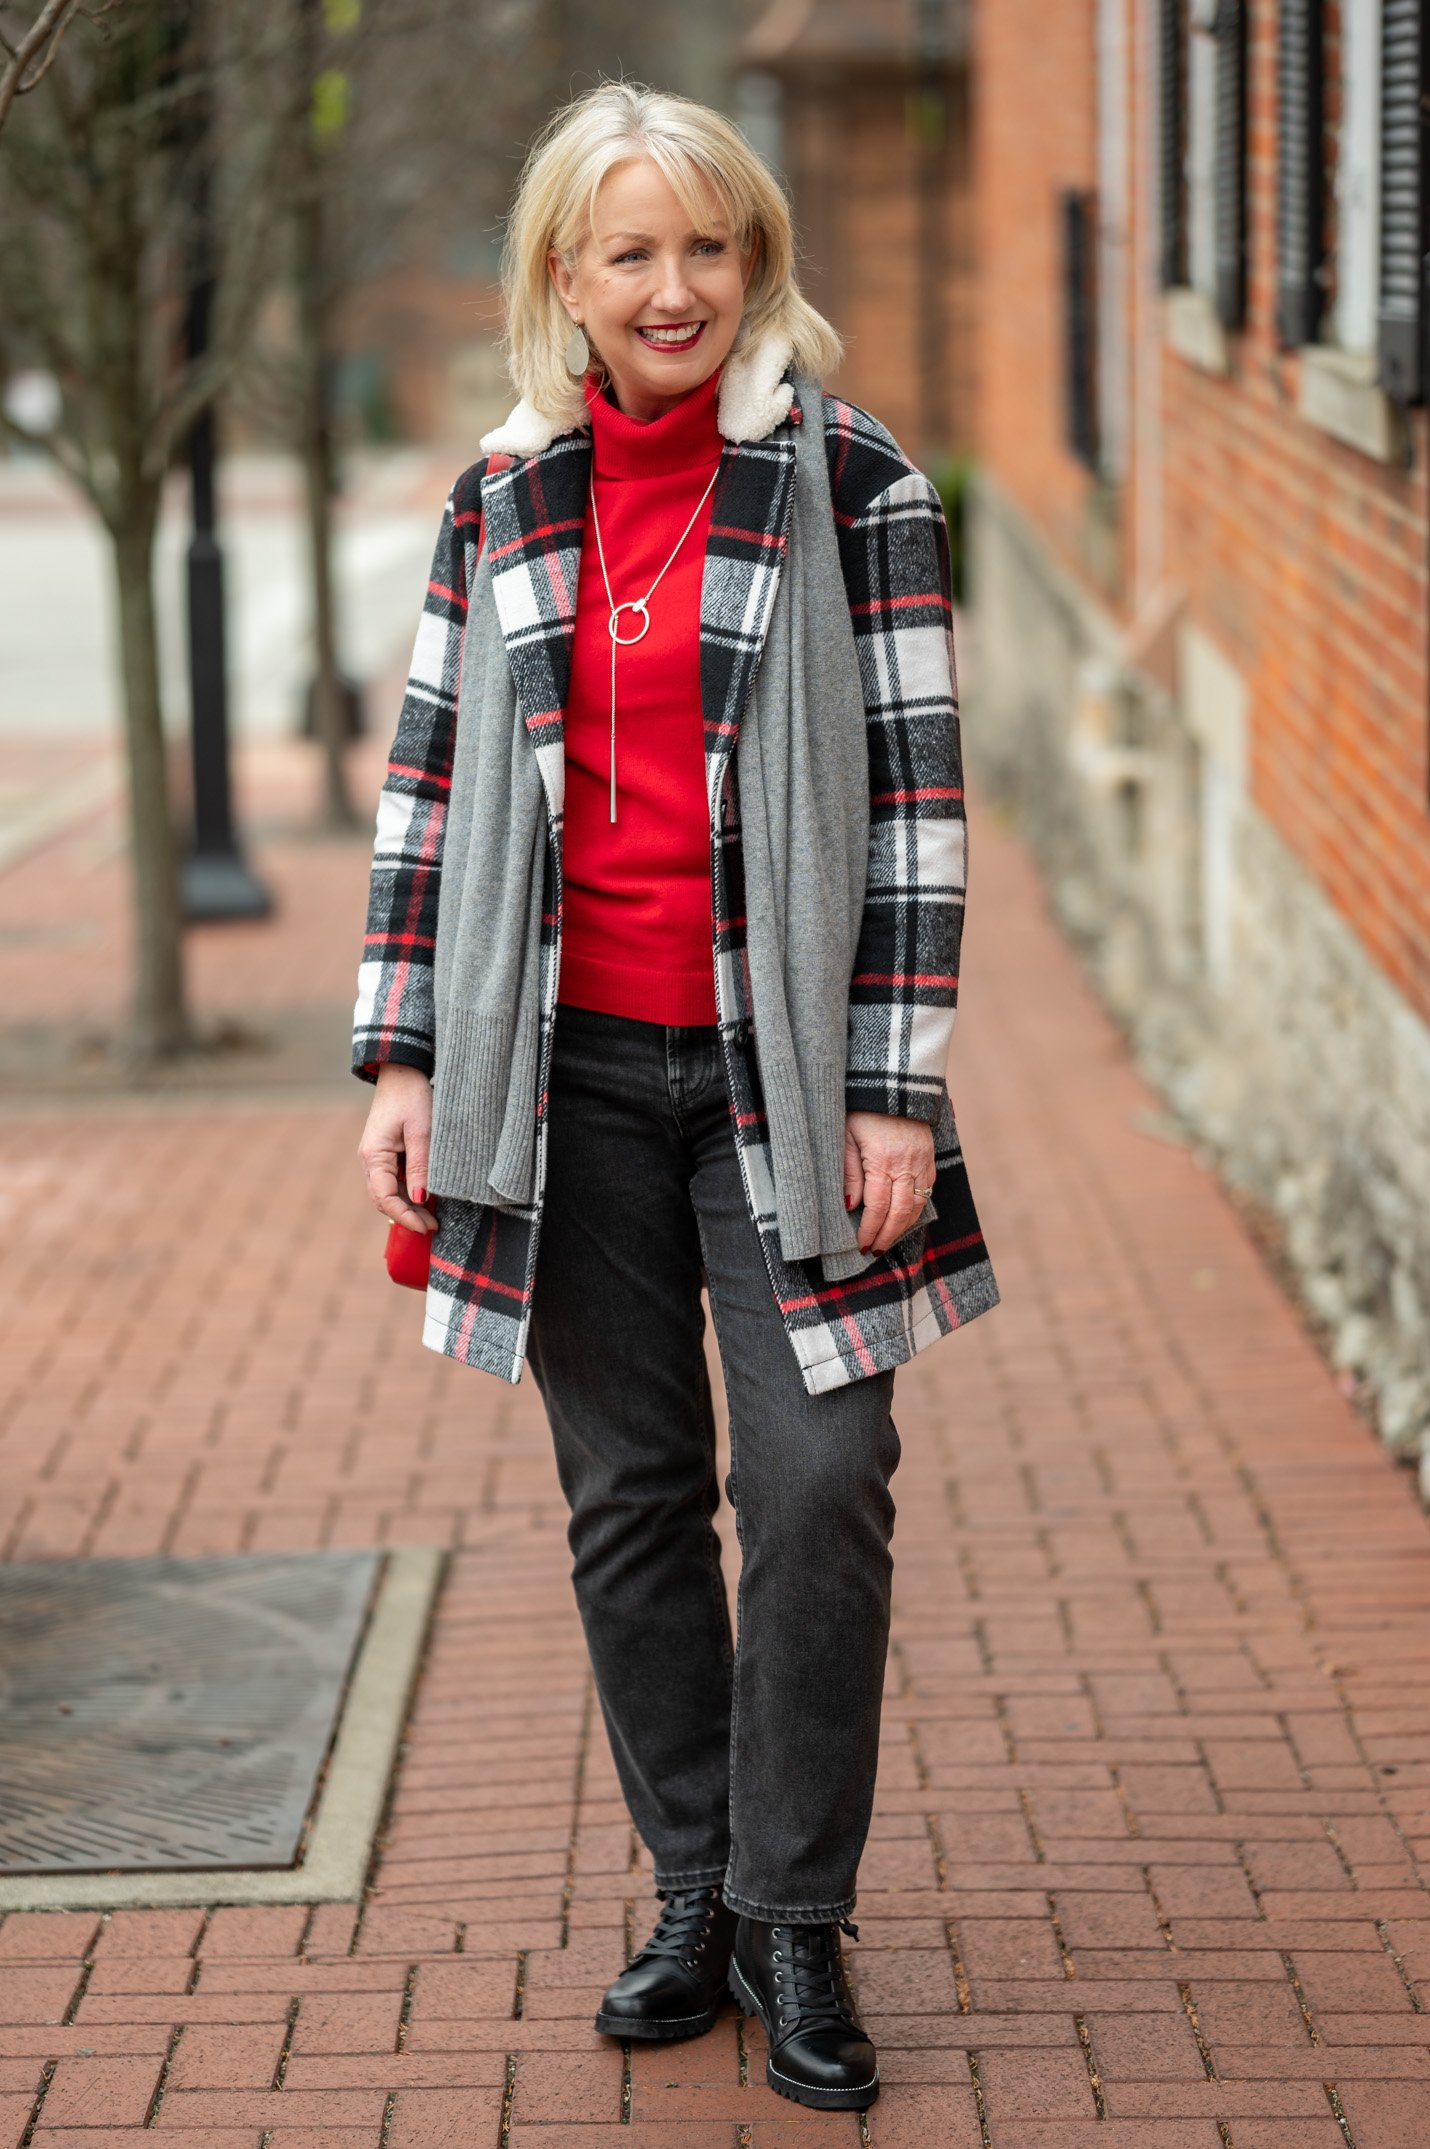 Winter Classics Outfit with Red Accents